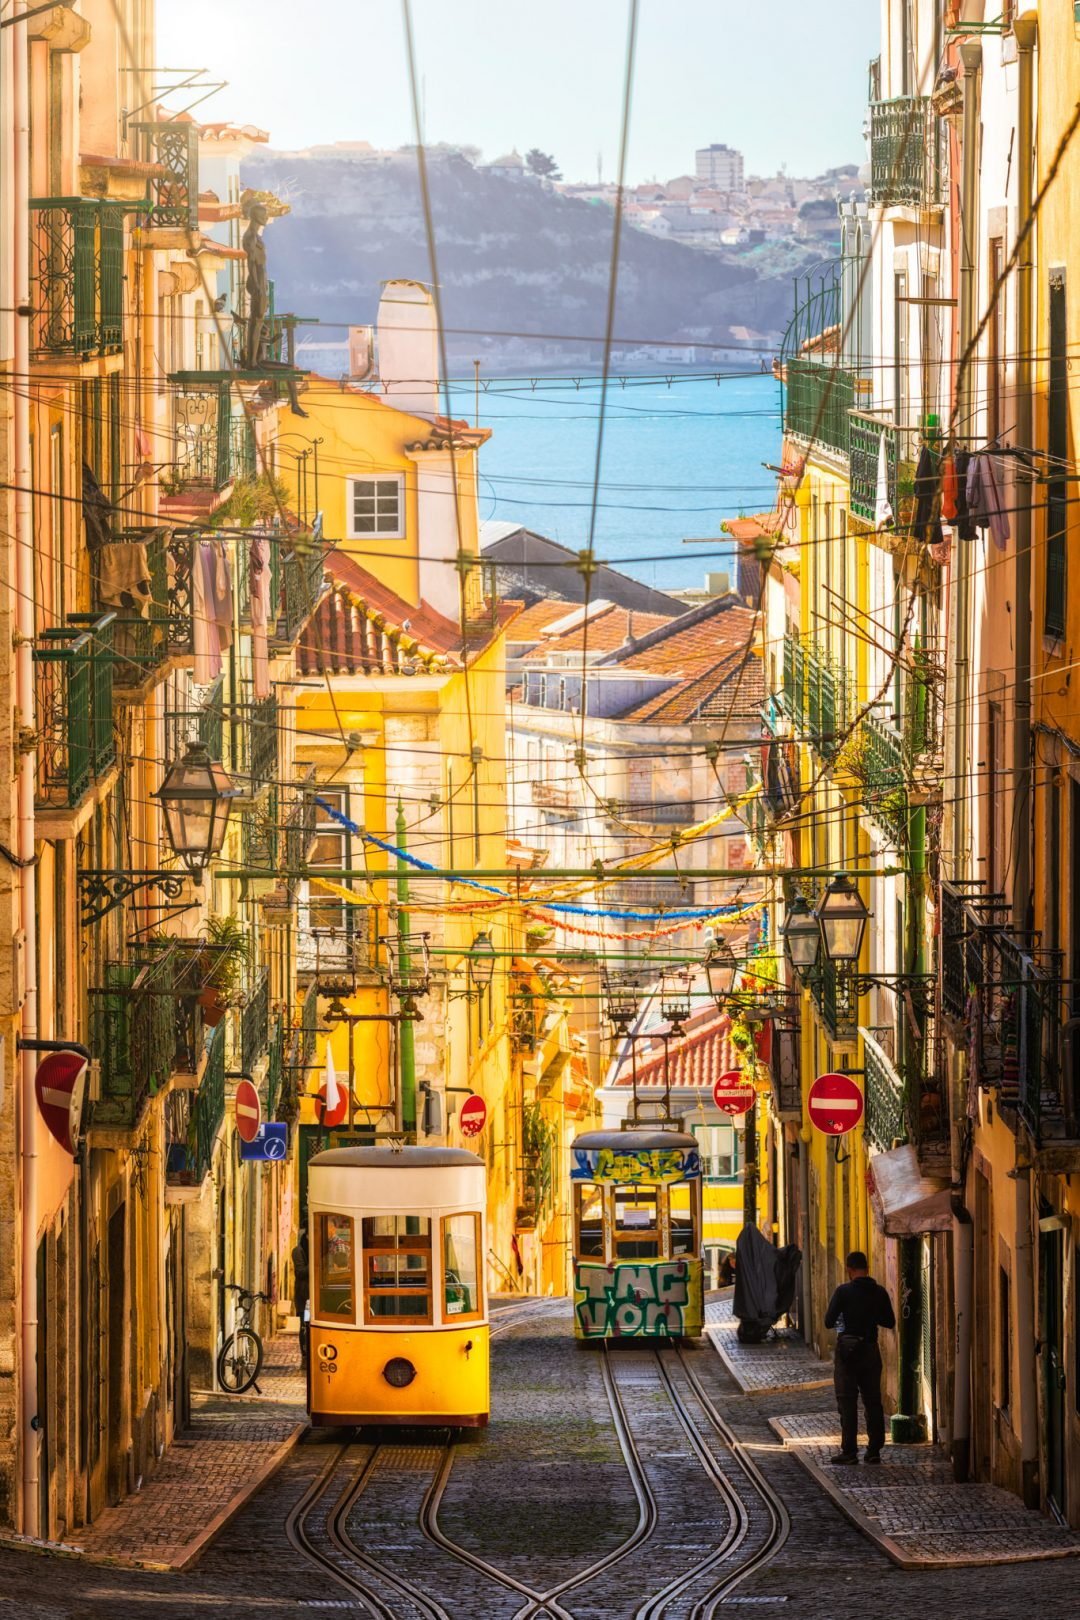 The Bica Funicular in Lisbon on a sunny day, Portugal.